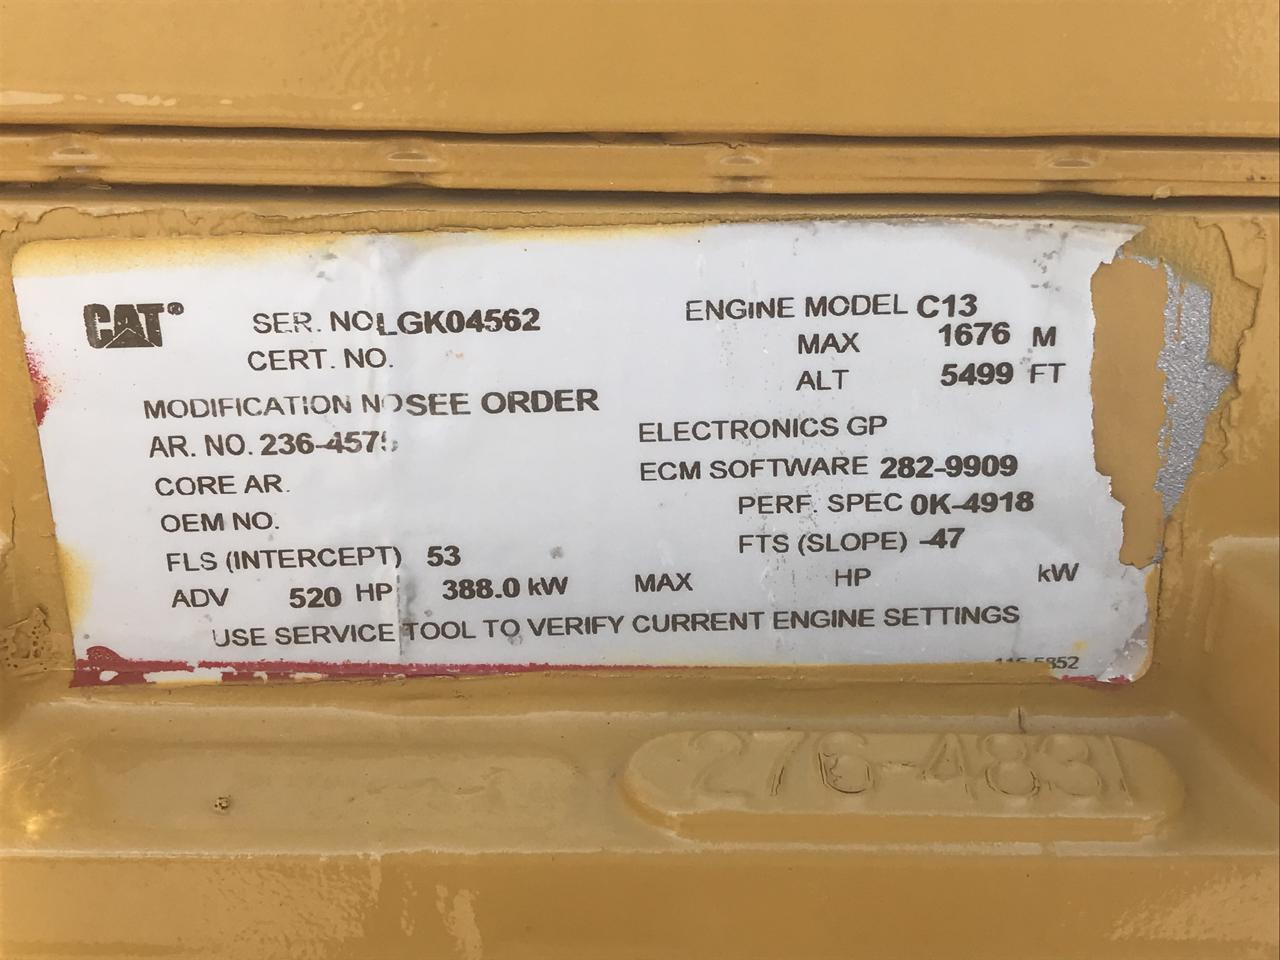 2006 C13 CAT Industrial Engine, Good Running Takeout, Tested